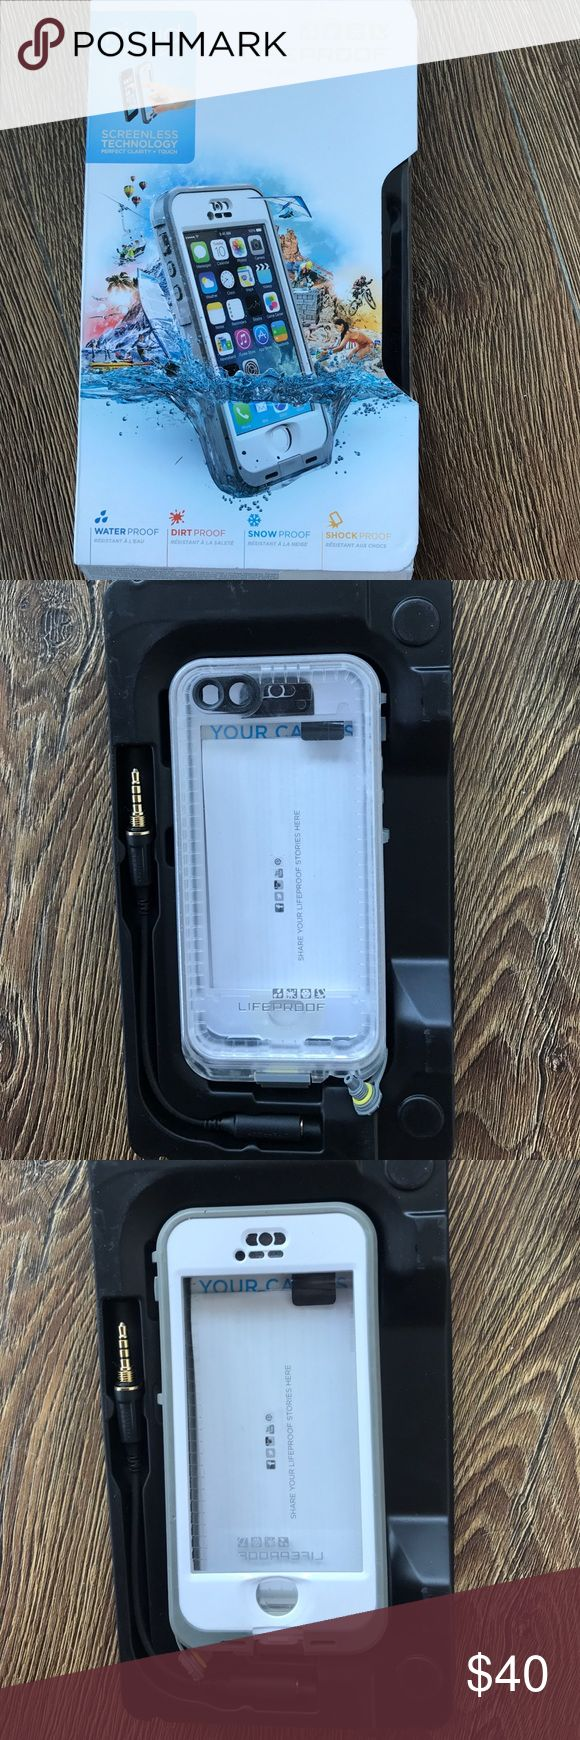 iPhone 5/5s life proof case white Only used for one week in Hawaii. White life proof case for iPhone 5/5s Accessories Phone Cases